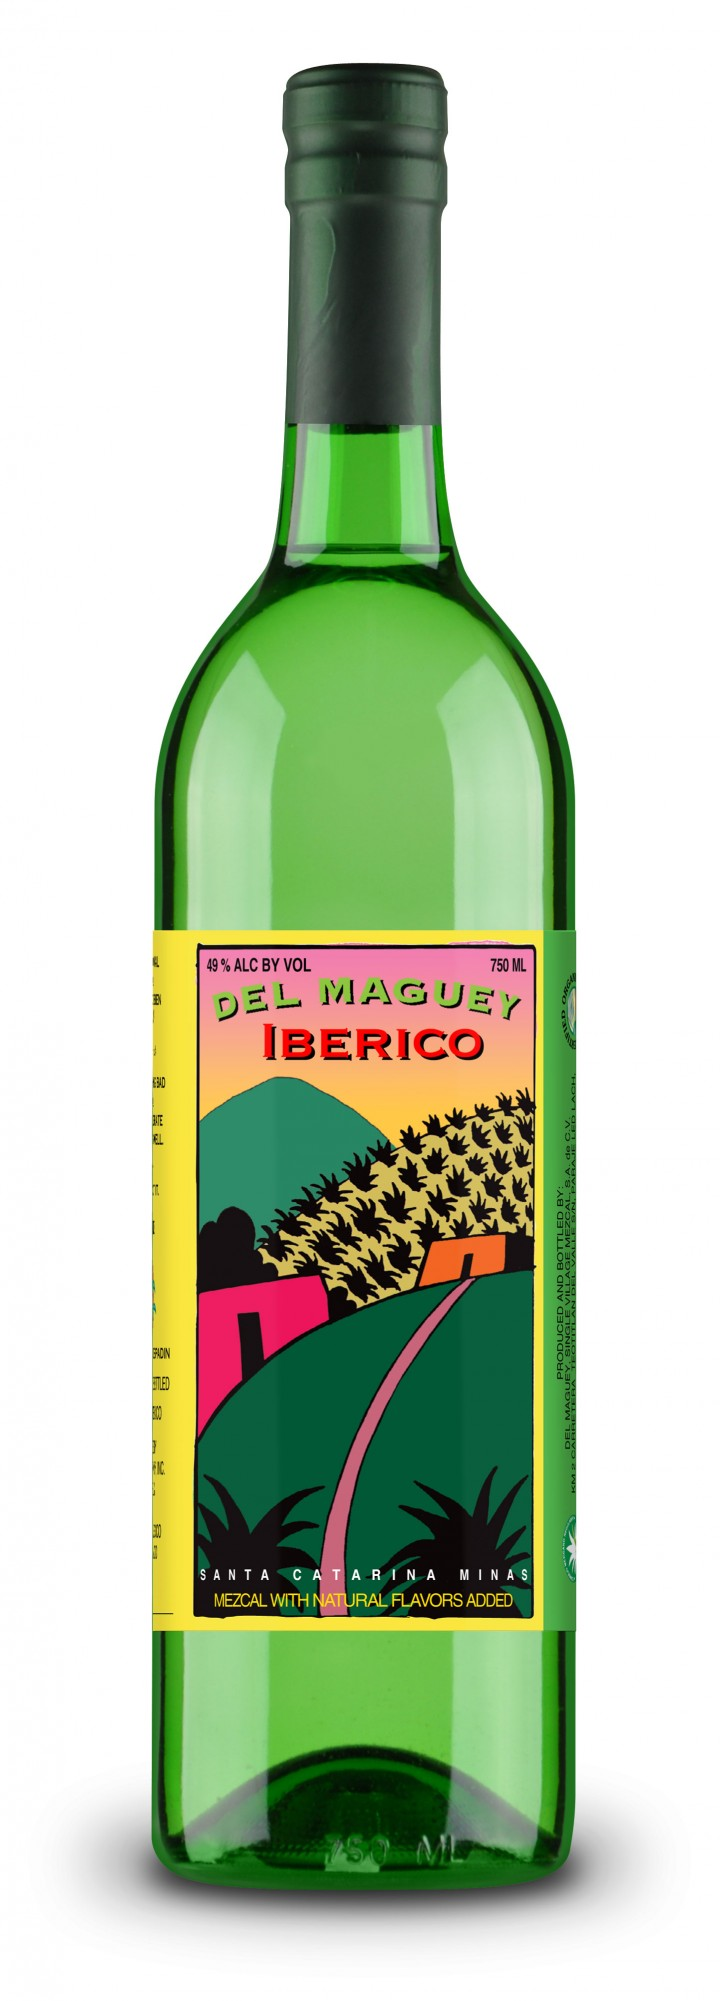 Made with Jamon Ibérico, Del Maguey Ibérico mezcal was created in partnership with José Andrés' ThinkFoodGroup.